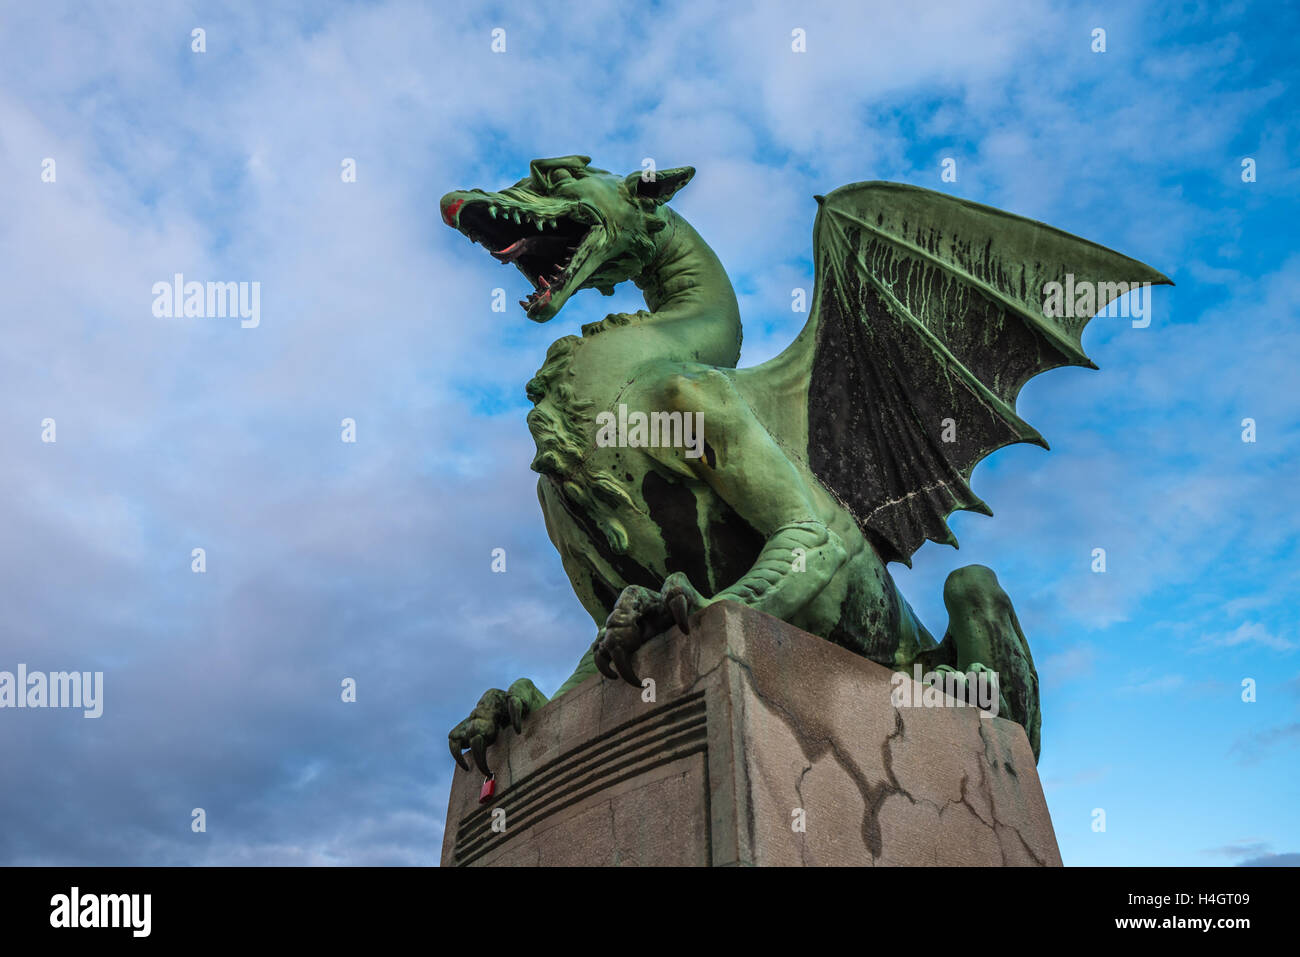 Sculpture of dragon on Dragon bridge in Ljubljana, Slovenia - Stock Image